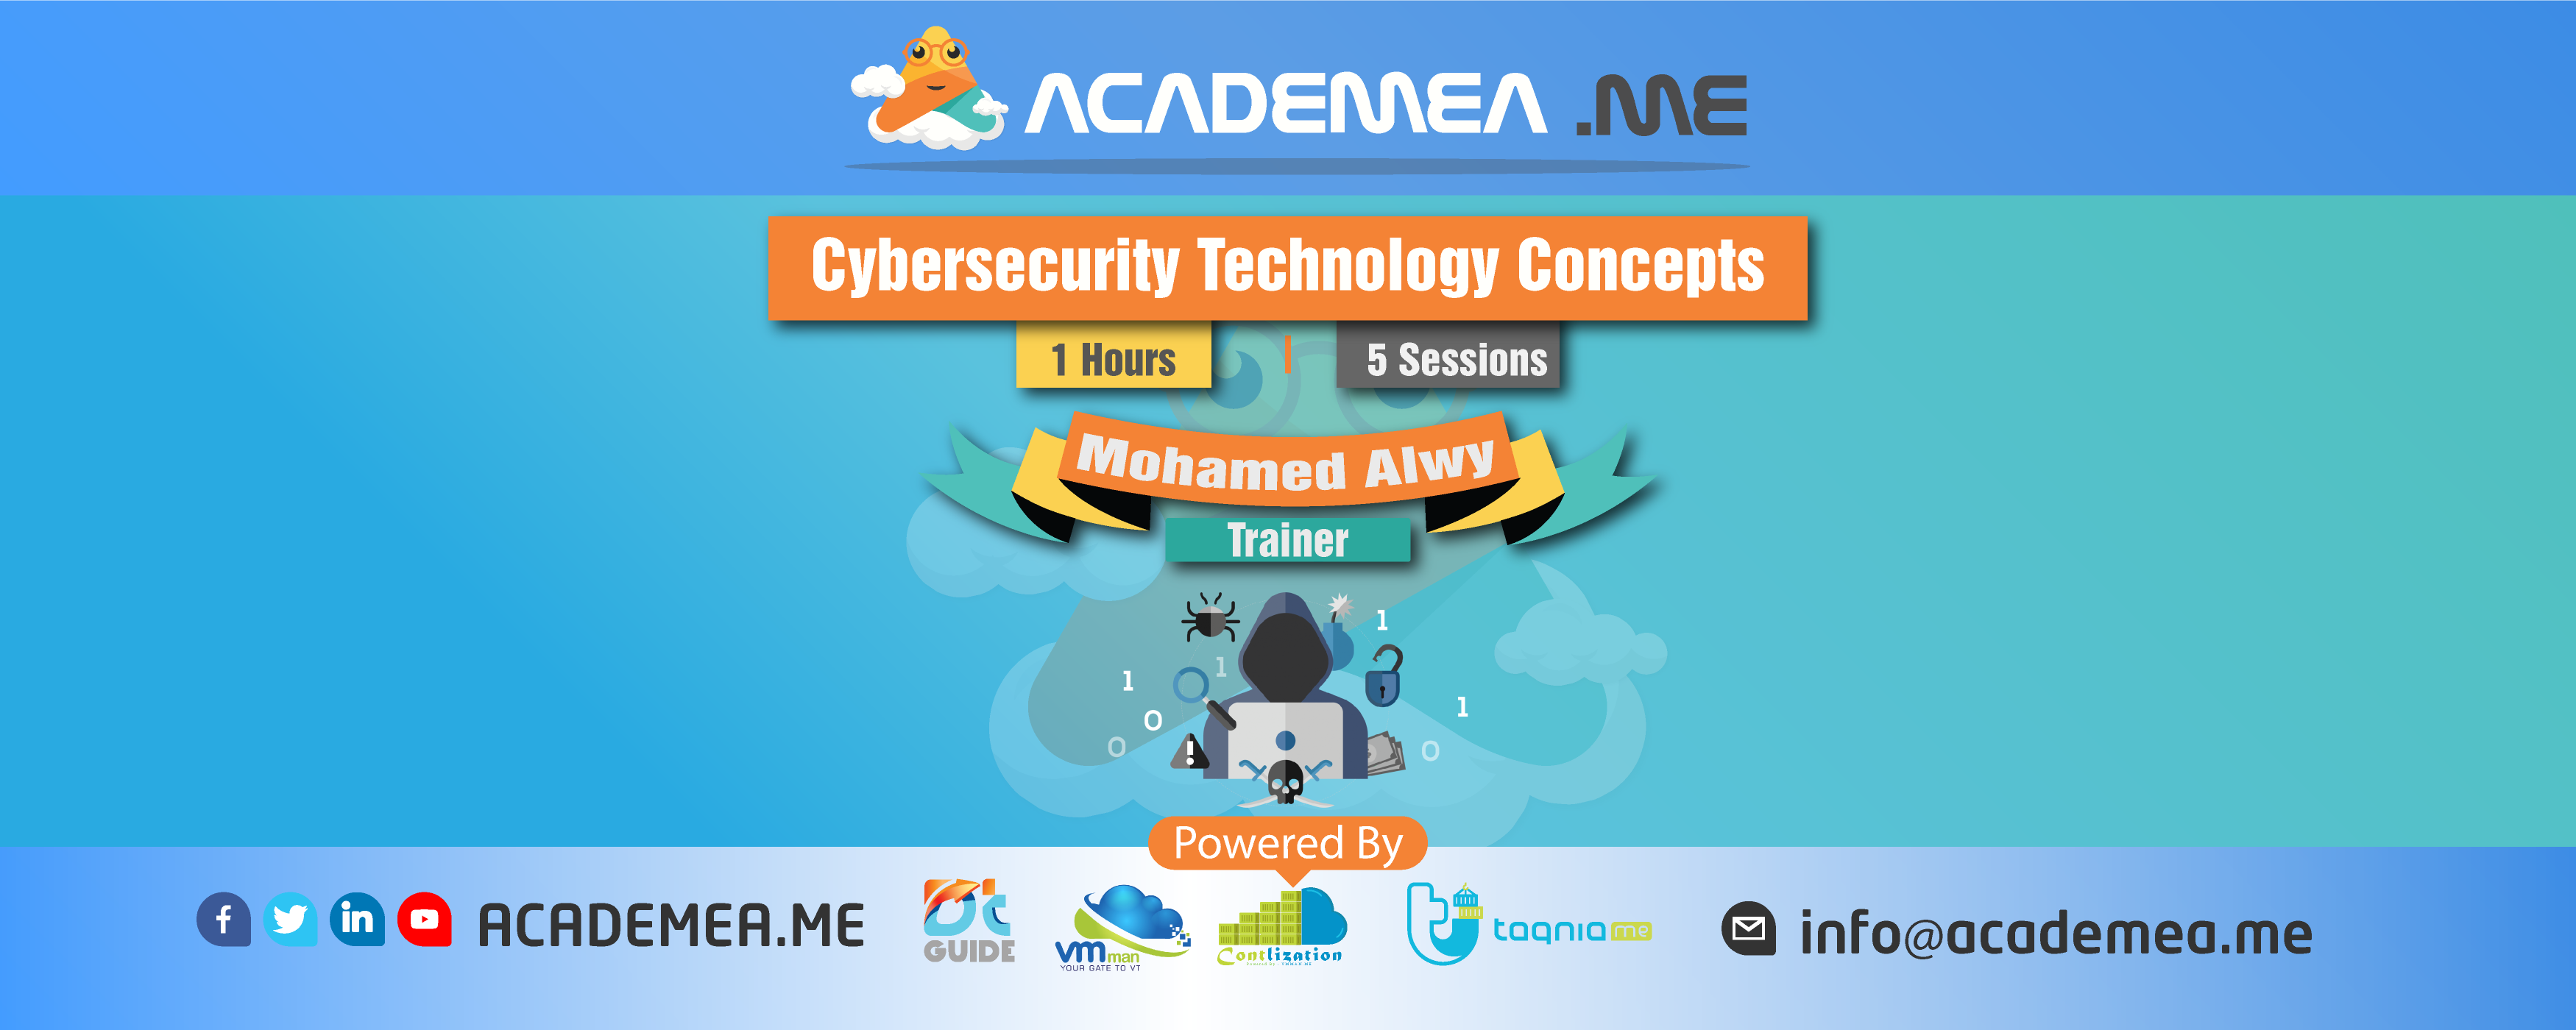 Cybersecurity Technology Concepts